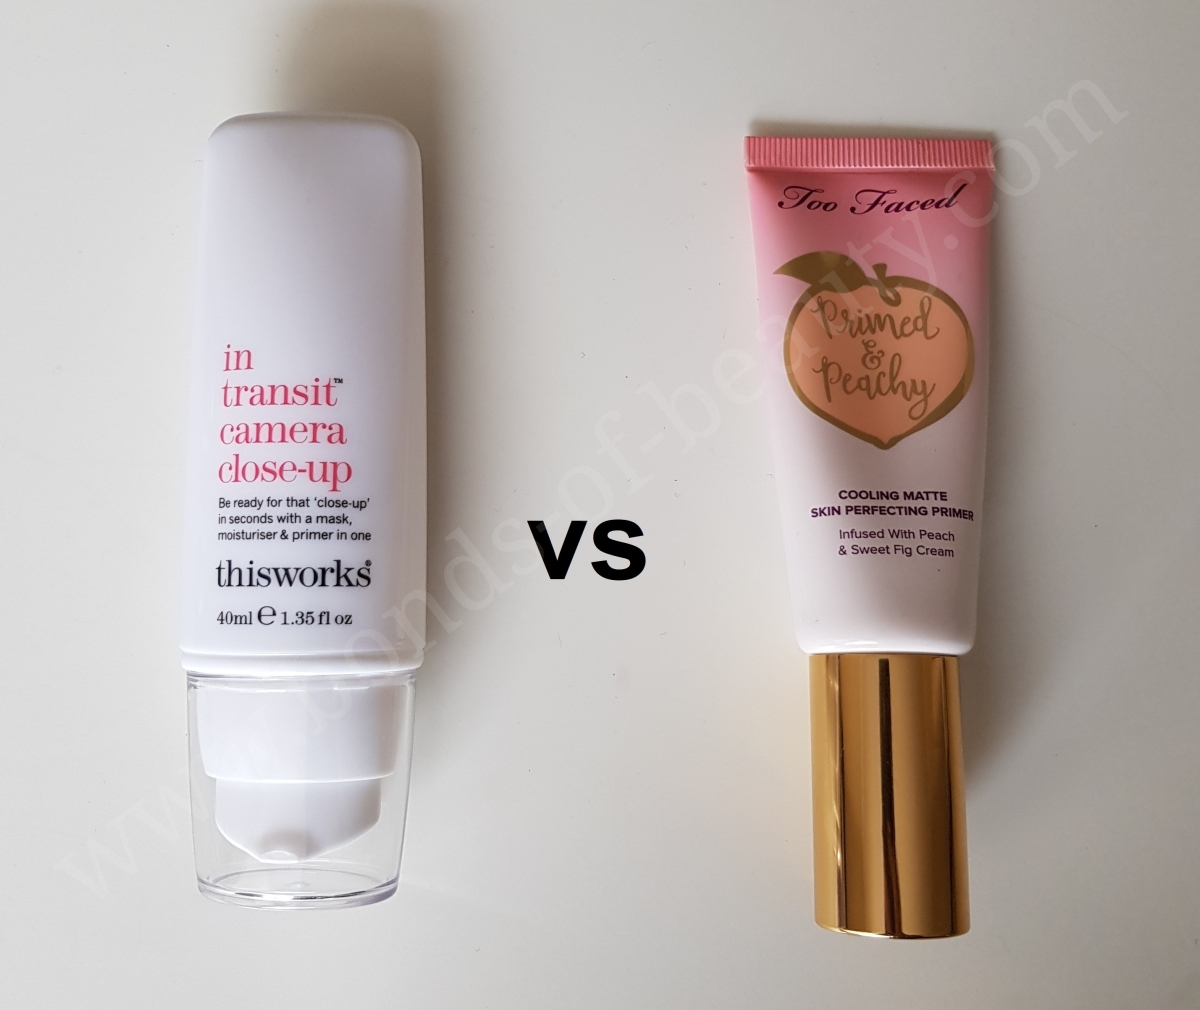 Primed & Peachy Cooling Matte Perfecting Primer by Too Faced #13